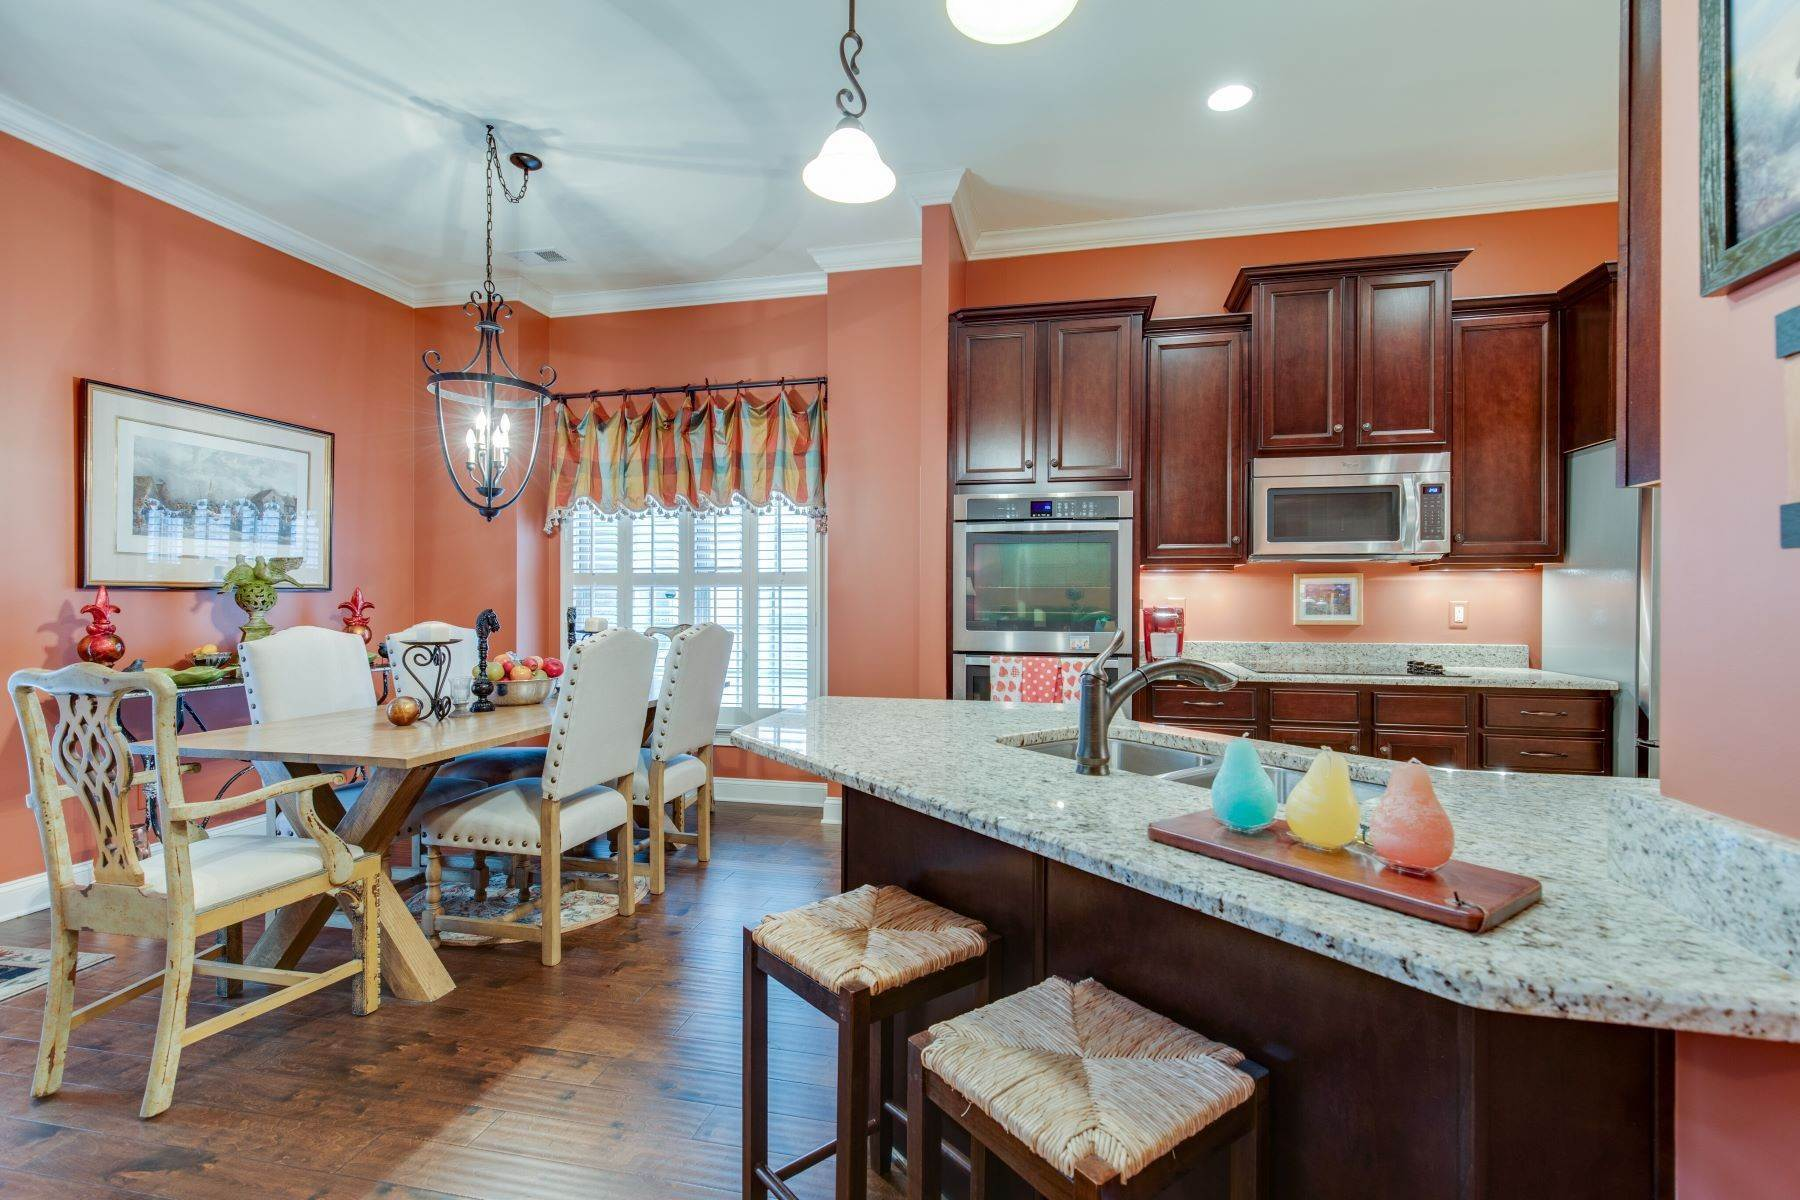 19. Single Family Homes for Sale at 4209 Stammer Place, Nashville, TN 37215 4209 Stammer Place Nashville, Tennessee 37215 United States